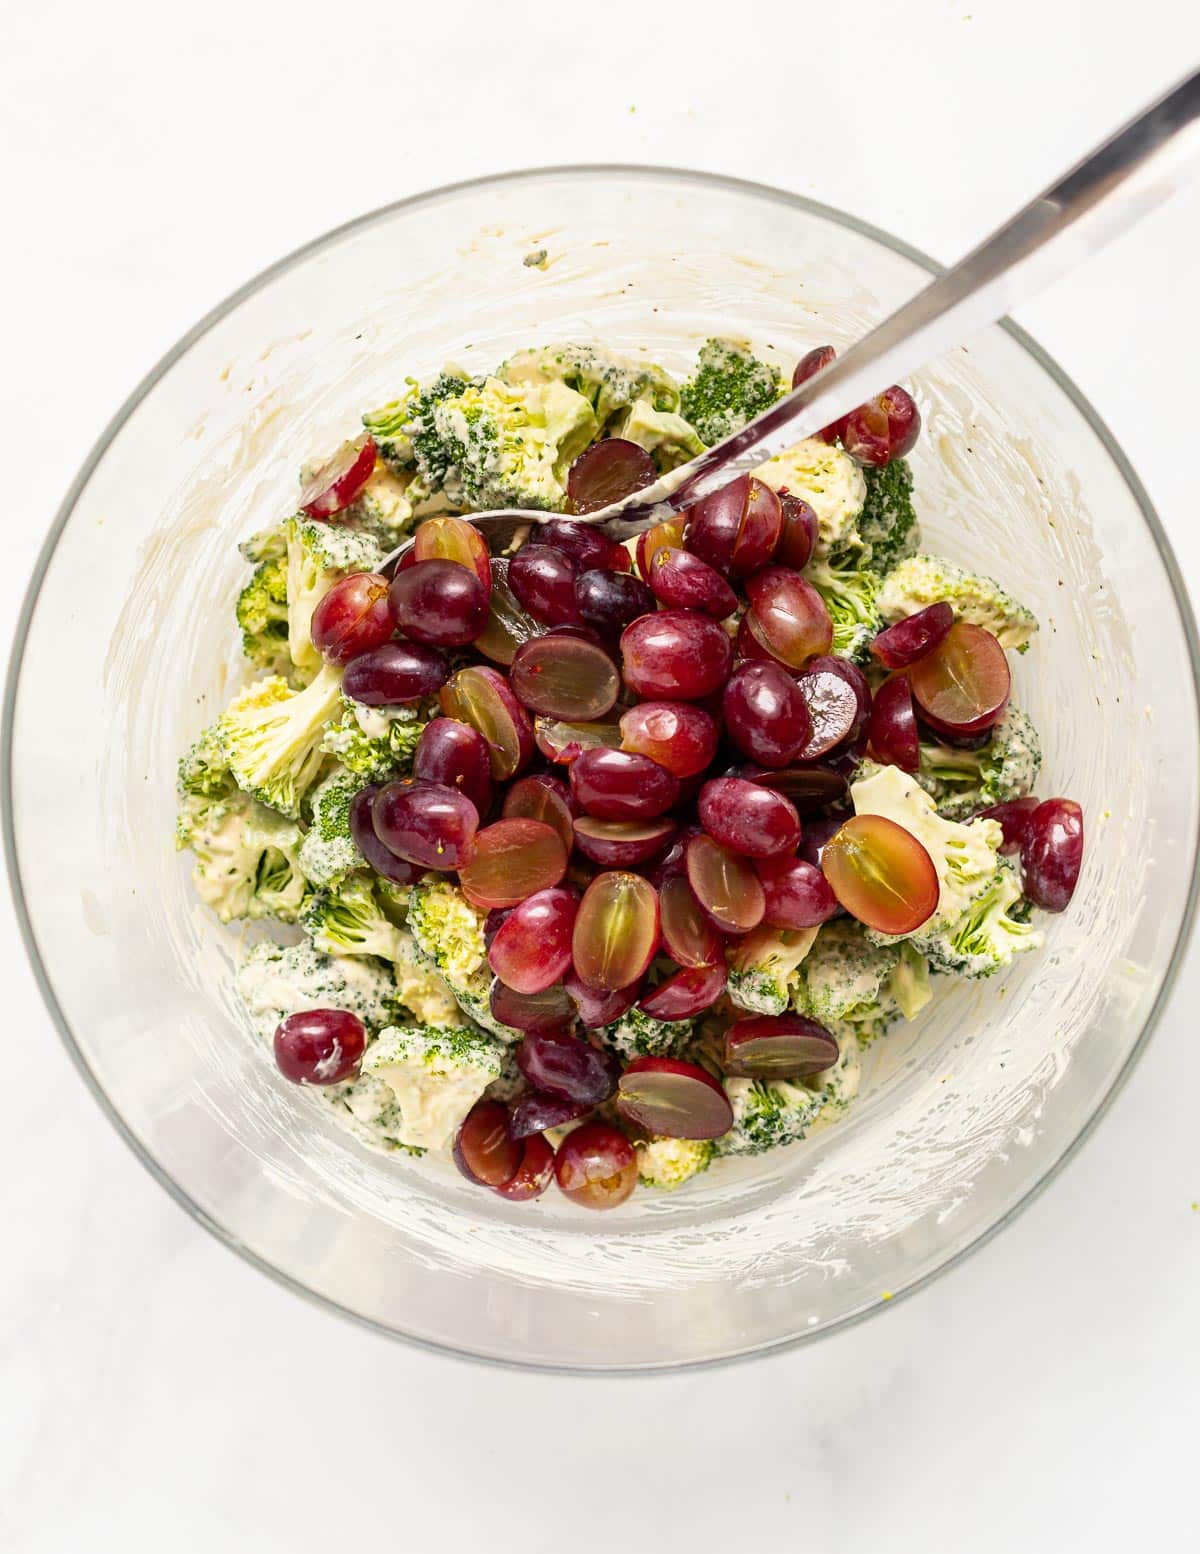 a bowl of broccoli tossed in creamy dressing with red grapes on top